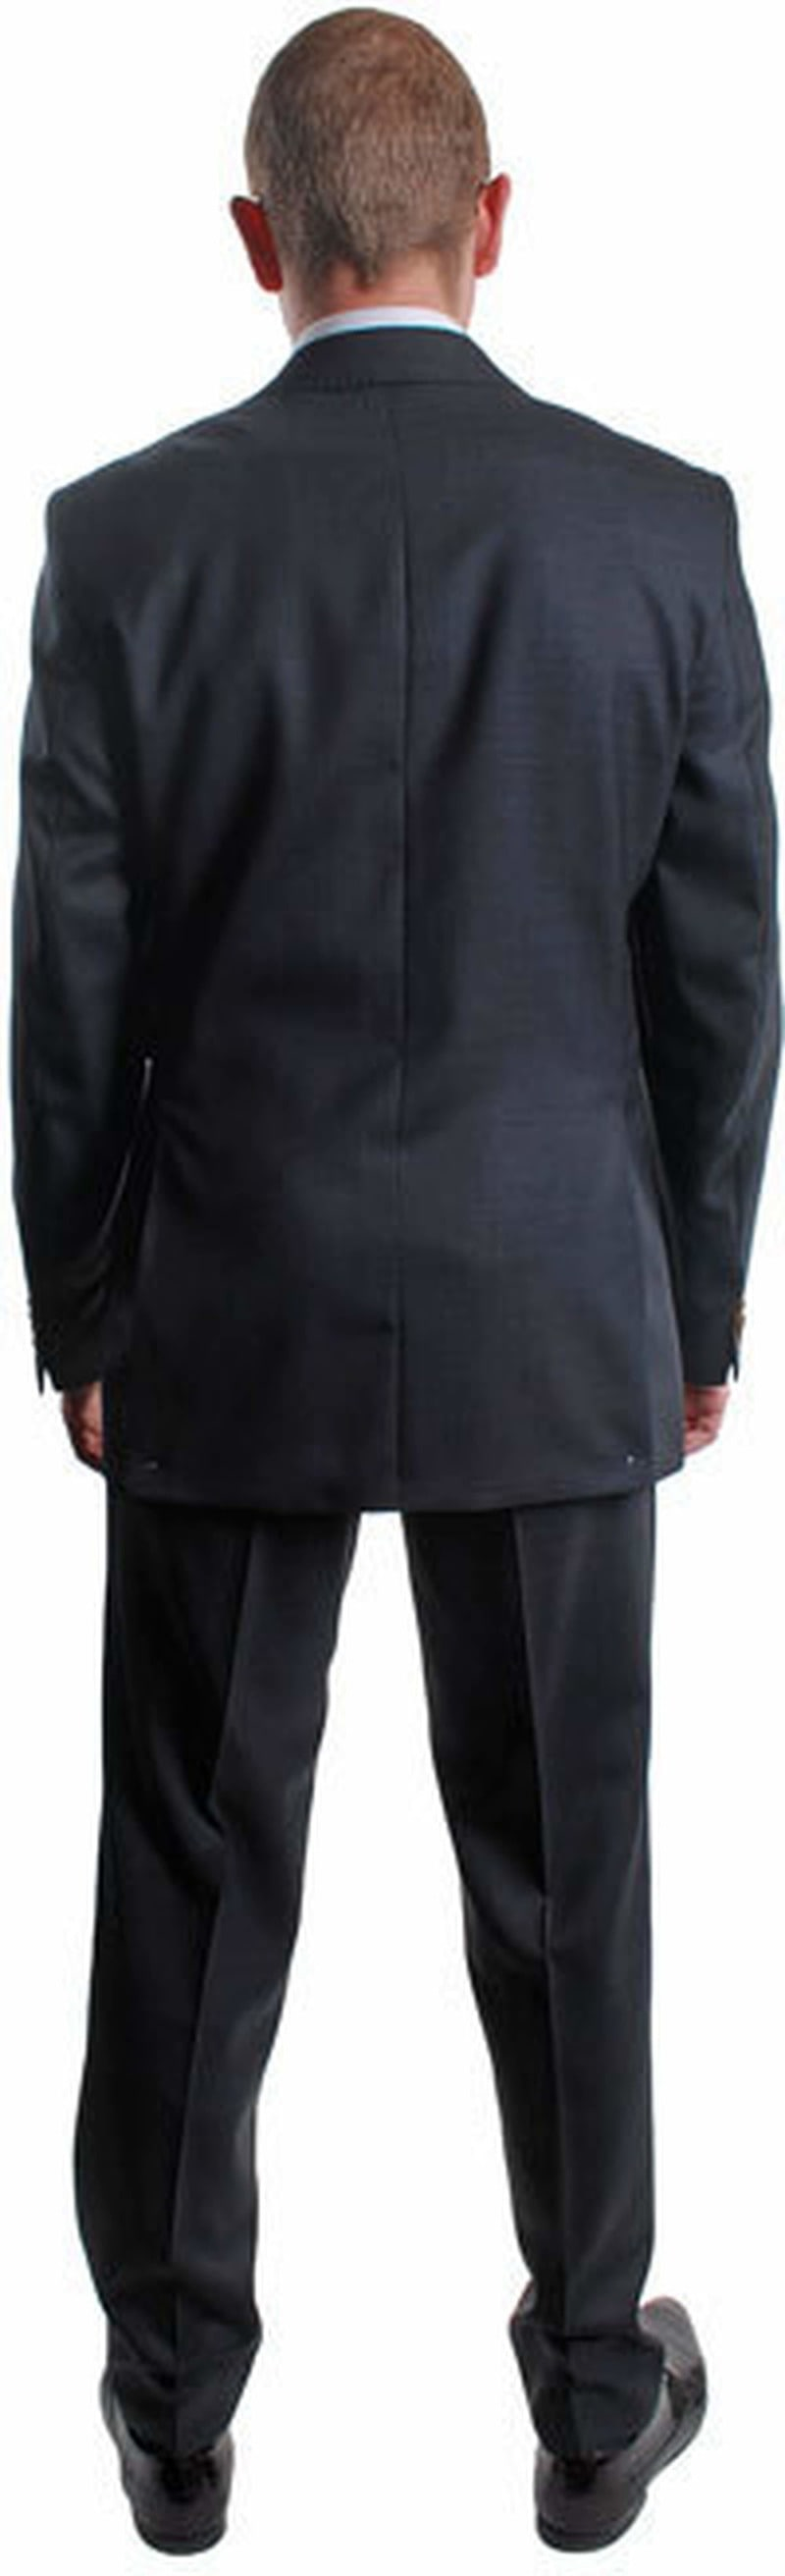 Suitable Suit Viga Dark Grey